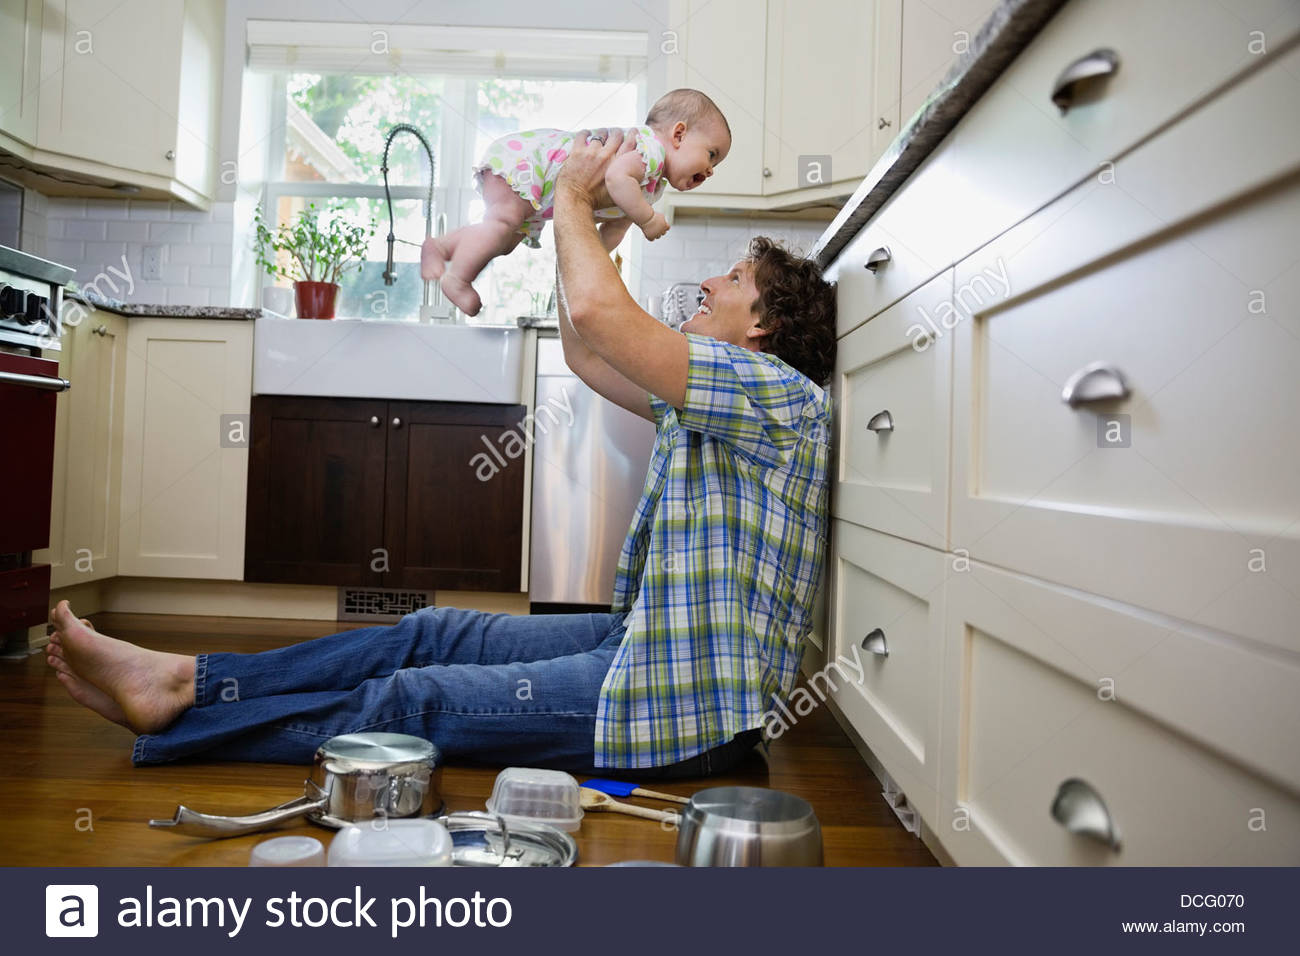 Profile shot of father playing with baby girl in kitchen - Stock Image